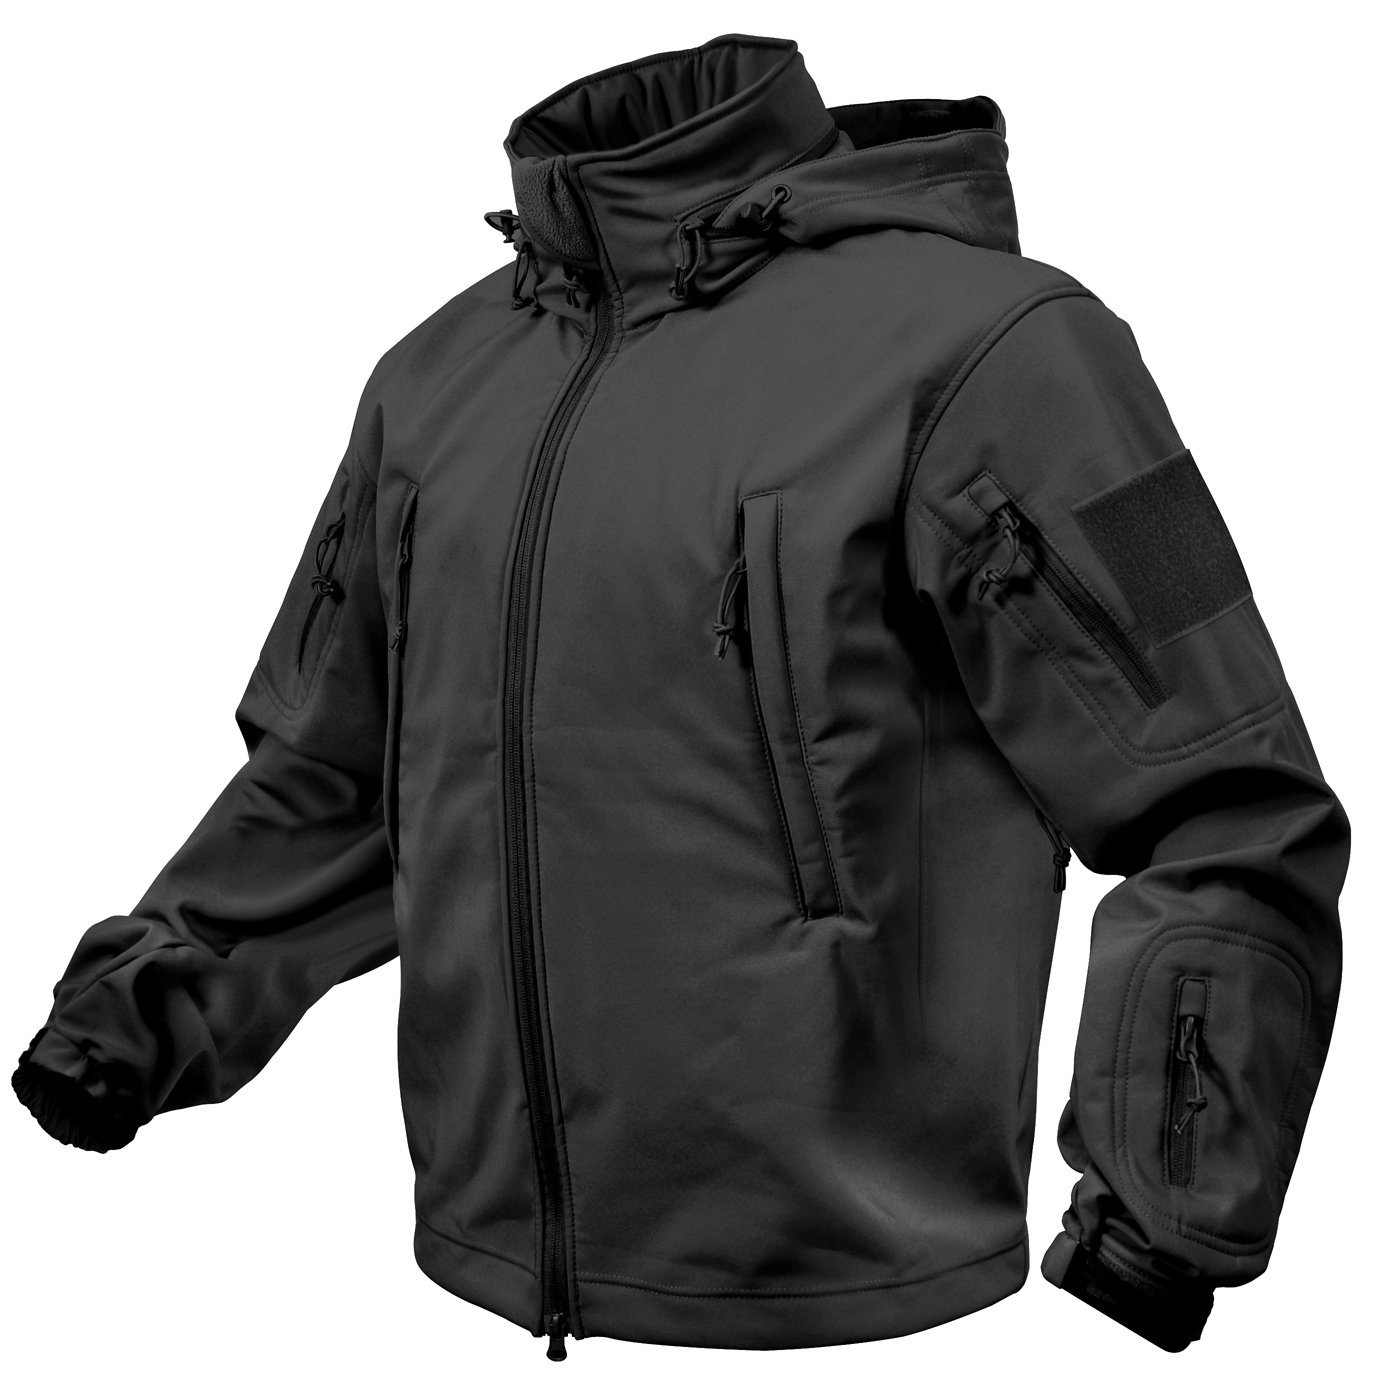 Rothco Special Ops Softshell Jacket, Black, XX-Large by Rothco